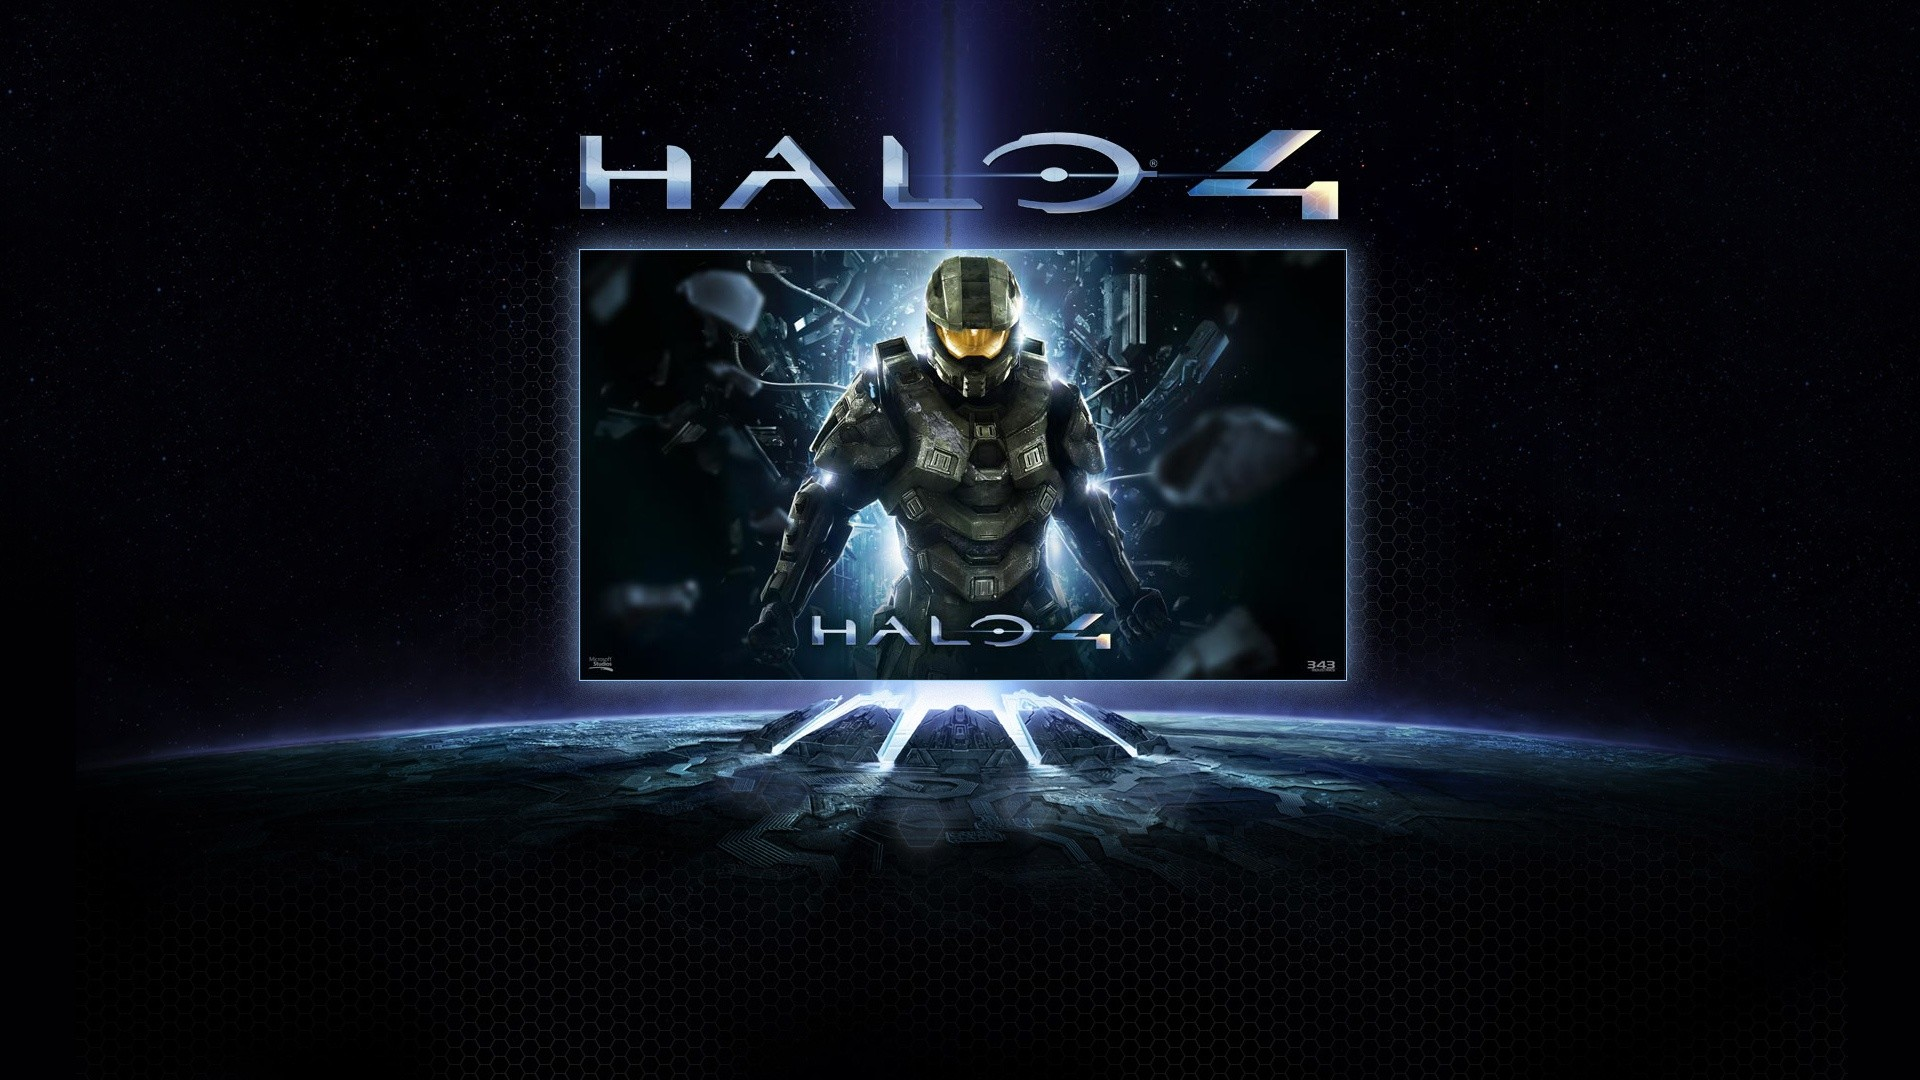 Wallpaper Halo 4 Android Wallpaper Halo 4 HD Wallpapers for 1920x1080